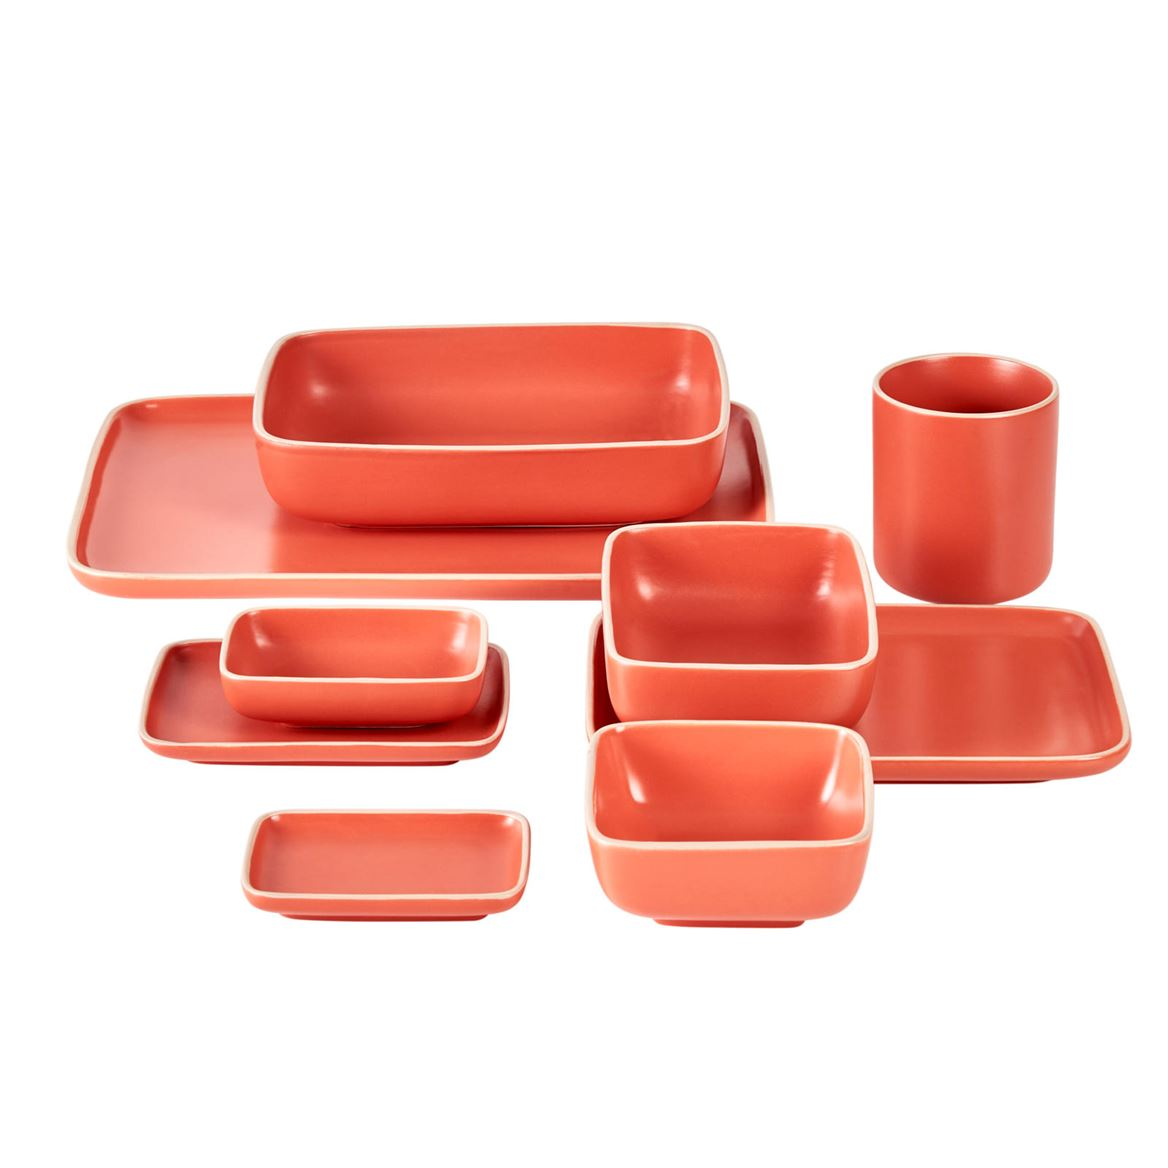 ELEMENTS Assiette orange Larg. 15 x Long. 21 cm_elements-assiette-orange-larg--15-x-long--21-cm